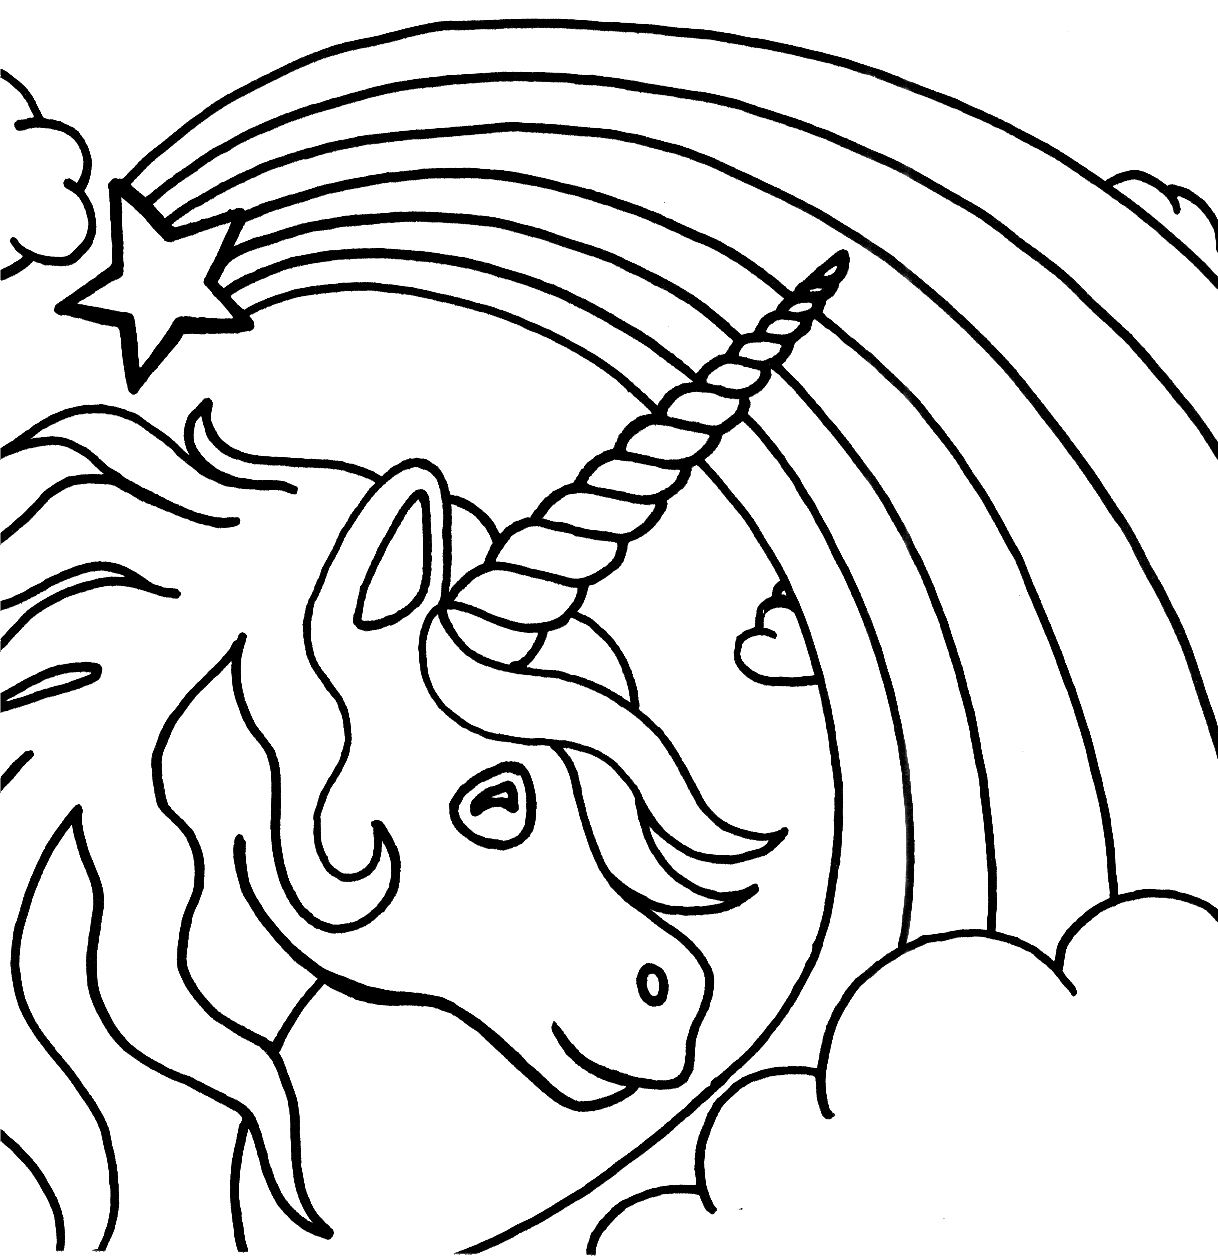 Free Unicorn Coloring Pages At Getdrawings Com Free For Personal